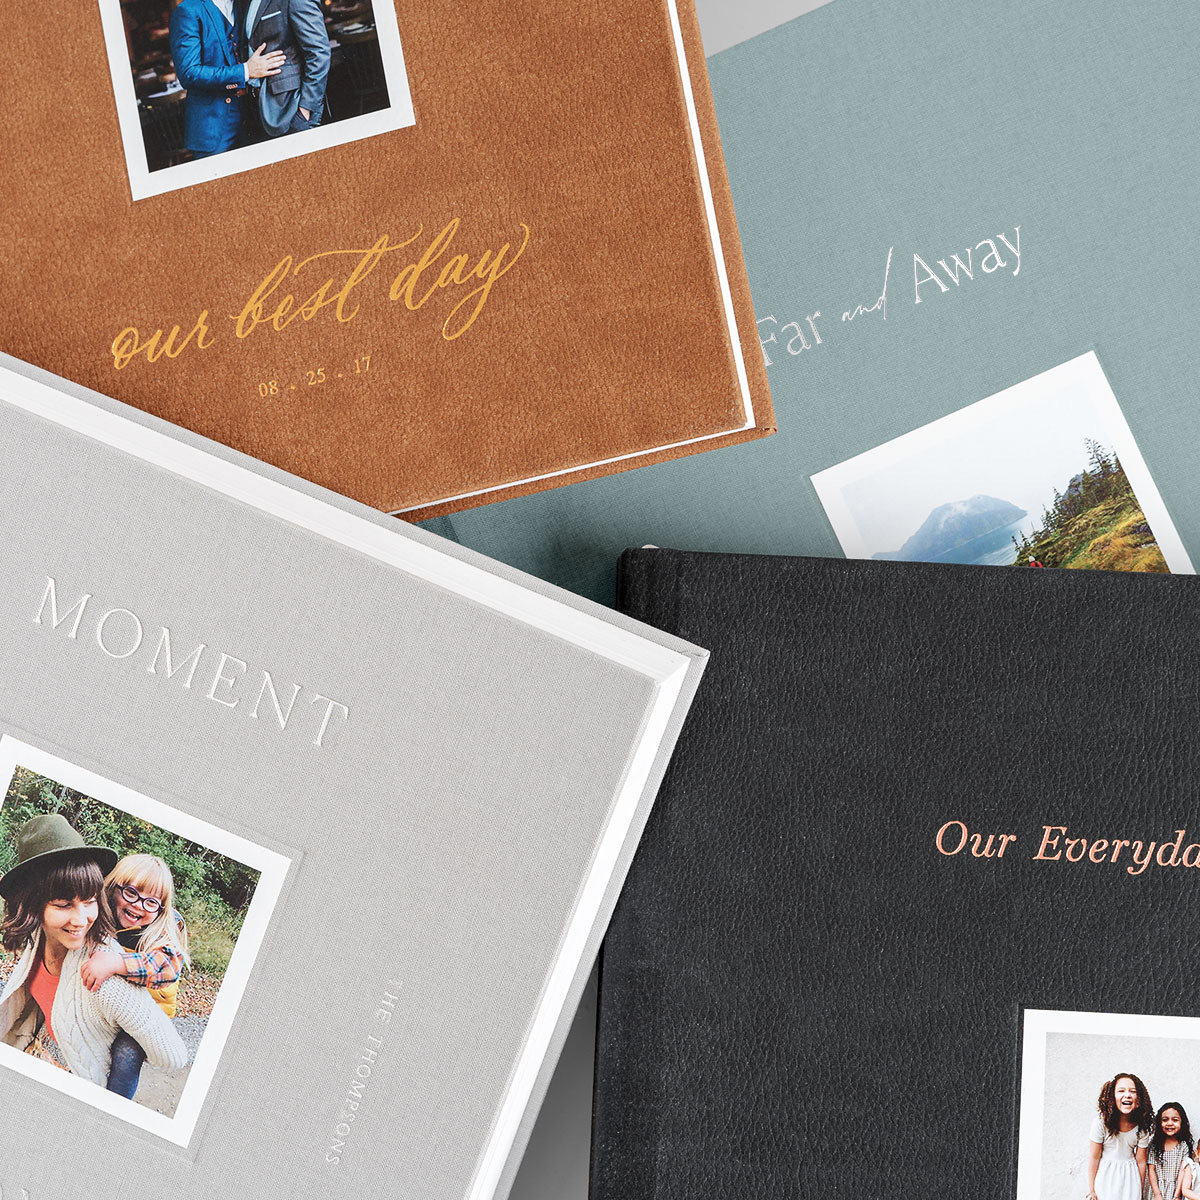 Customizable photo book cover templates